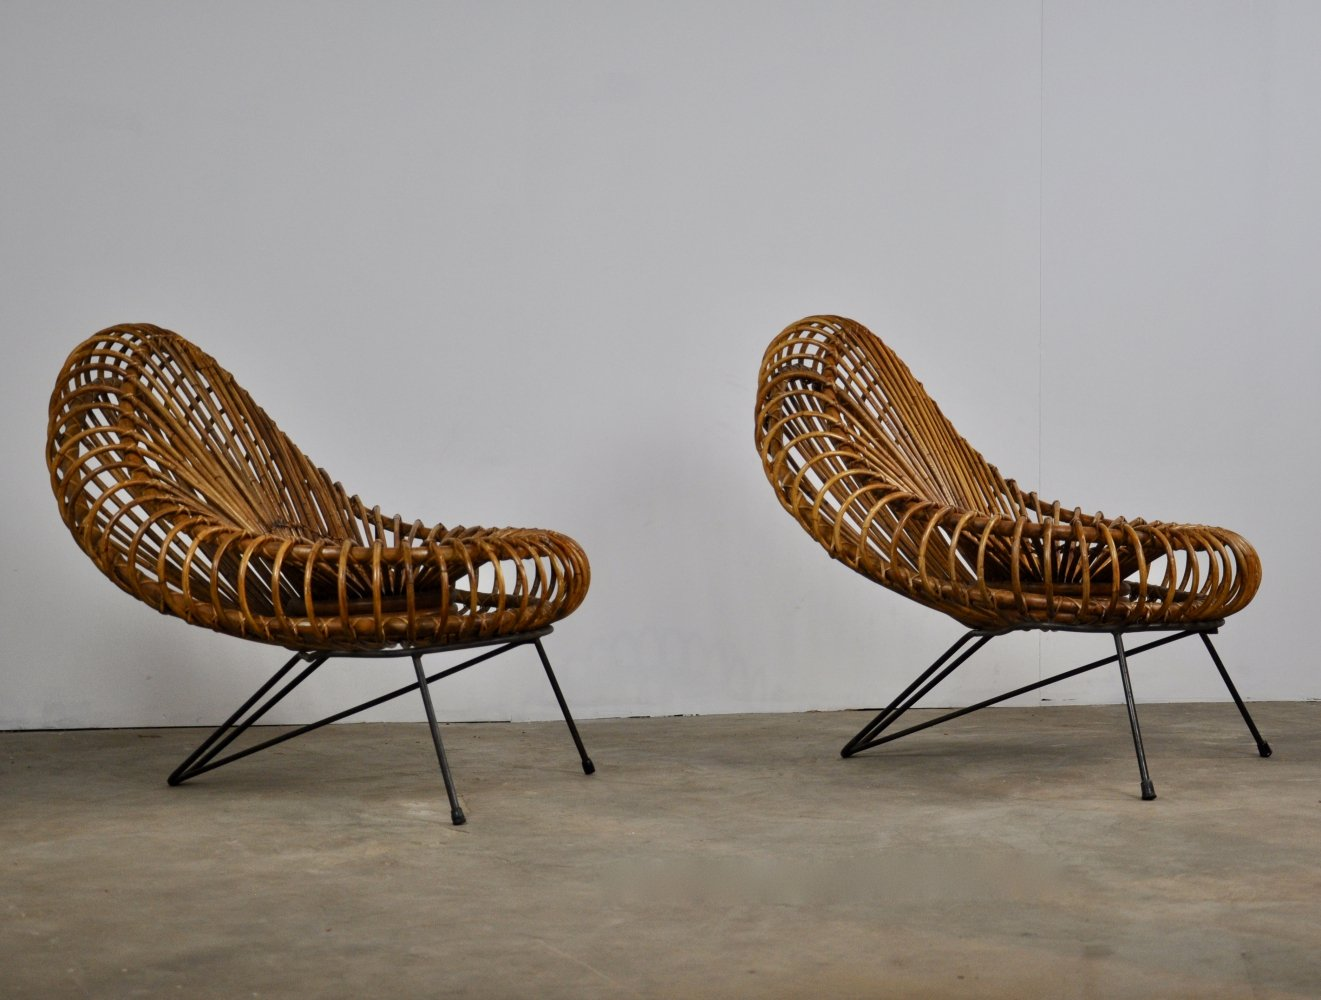 Pair of lounge chairs by Jeanine Abraham & Dirk Jan Rol for Rougier